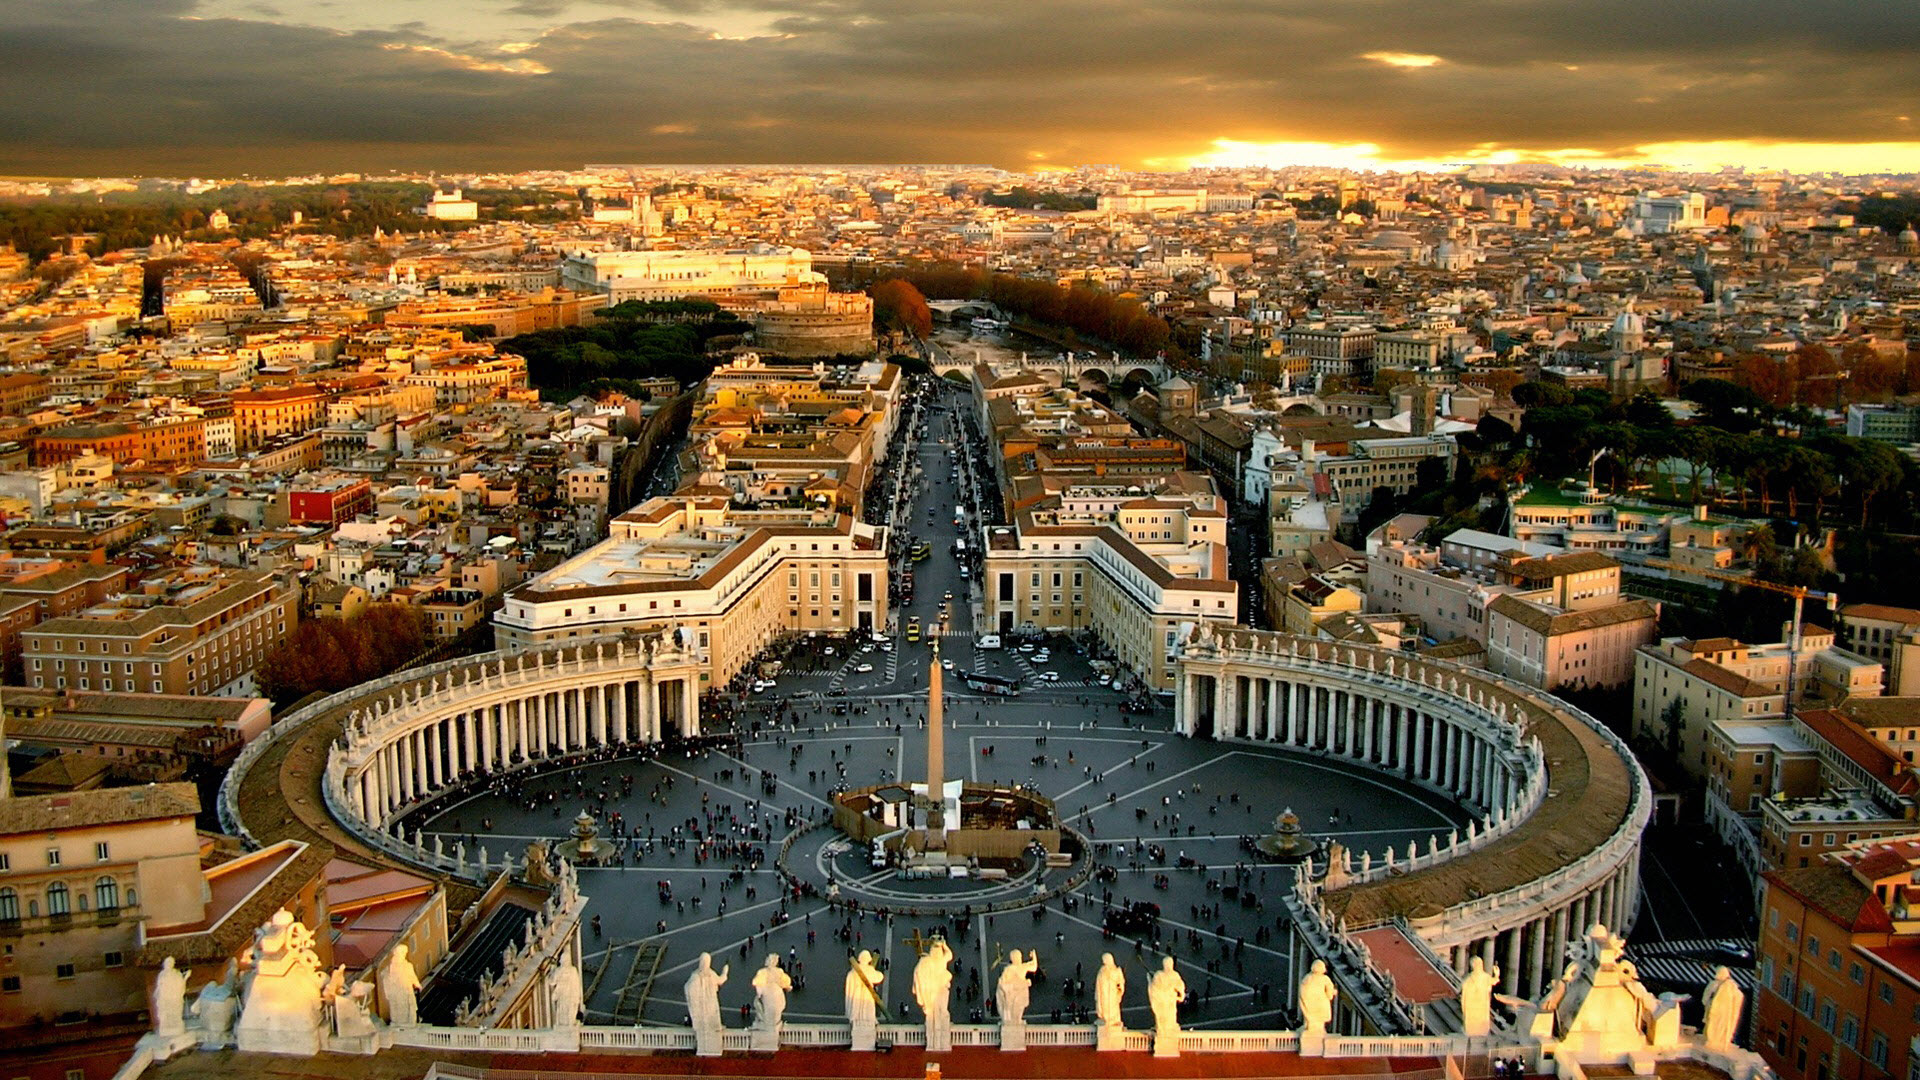 Vatican-City-Italy-wallpaper-wpc5809839